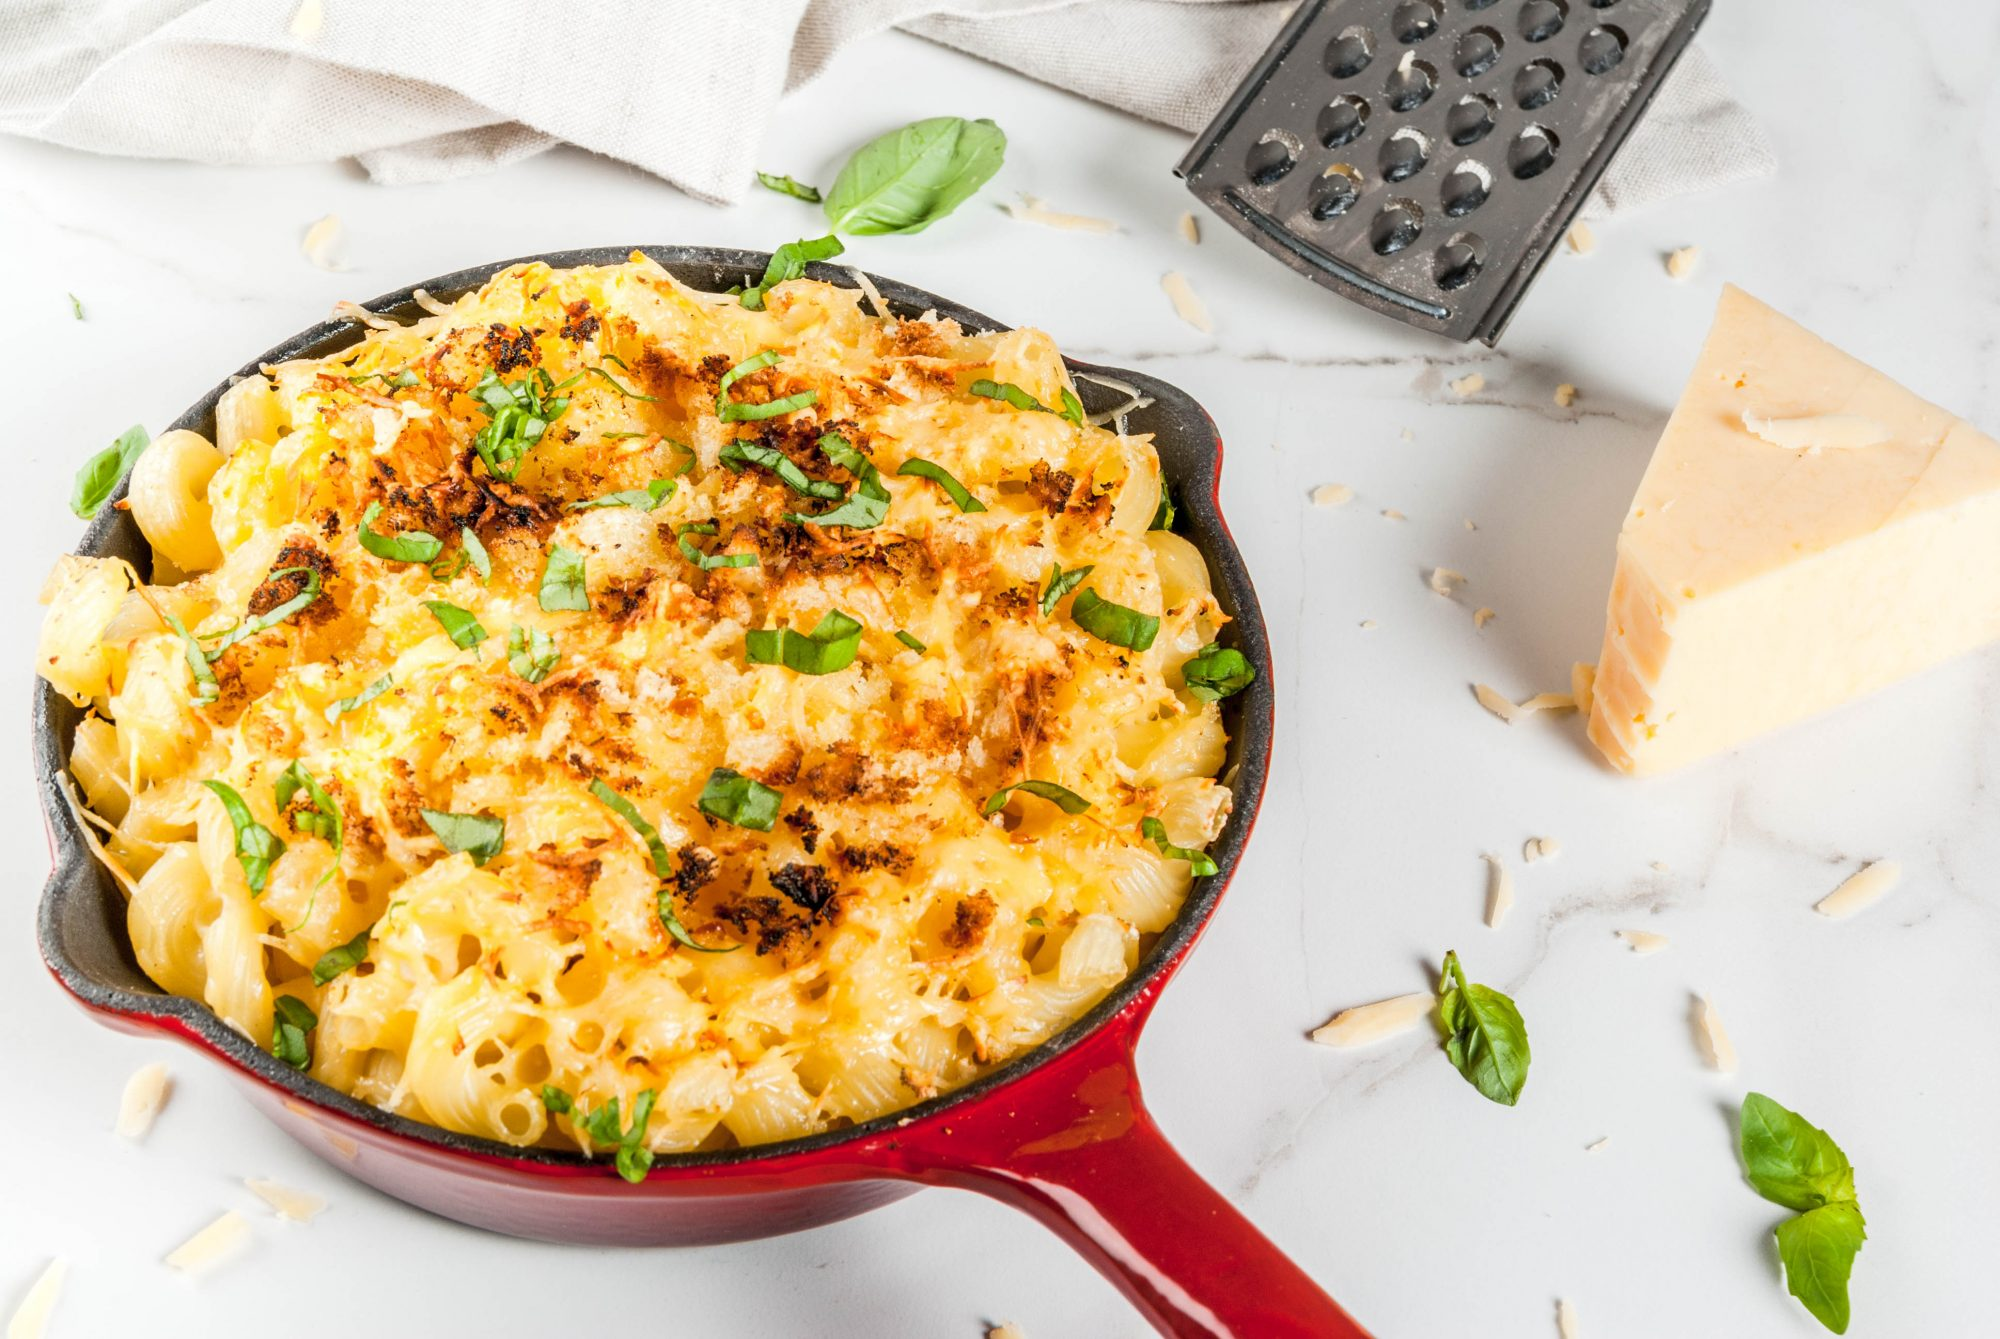 This is the Best Cheese for Mac and Cheese